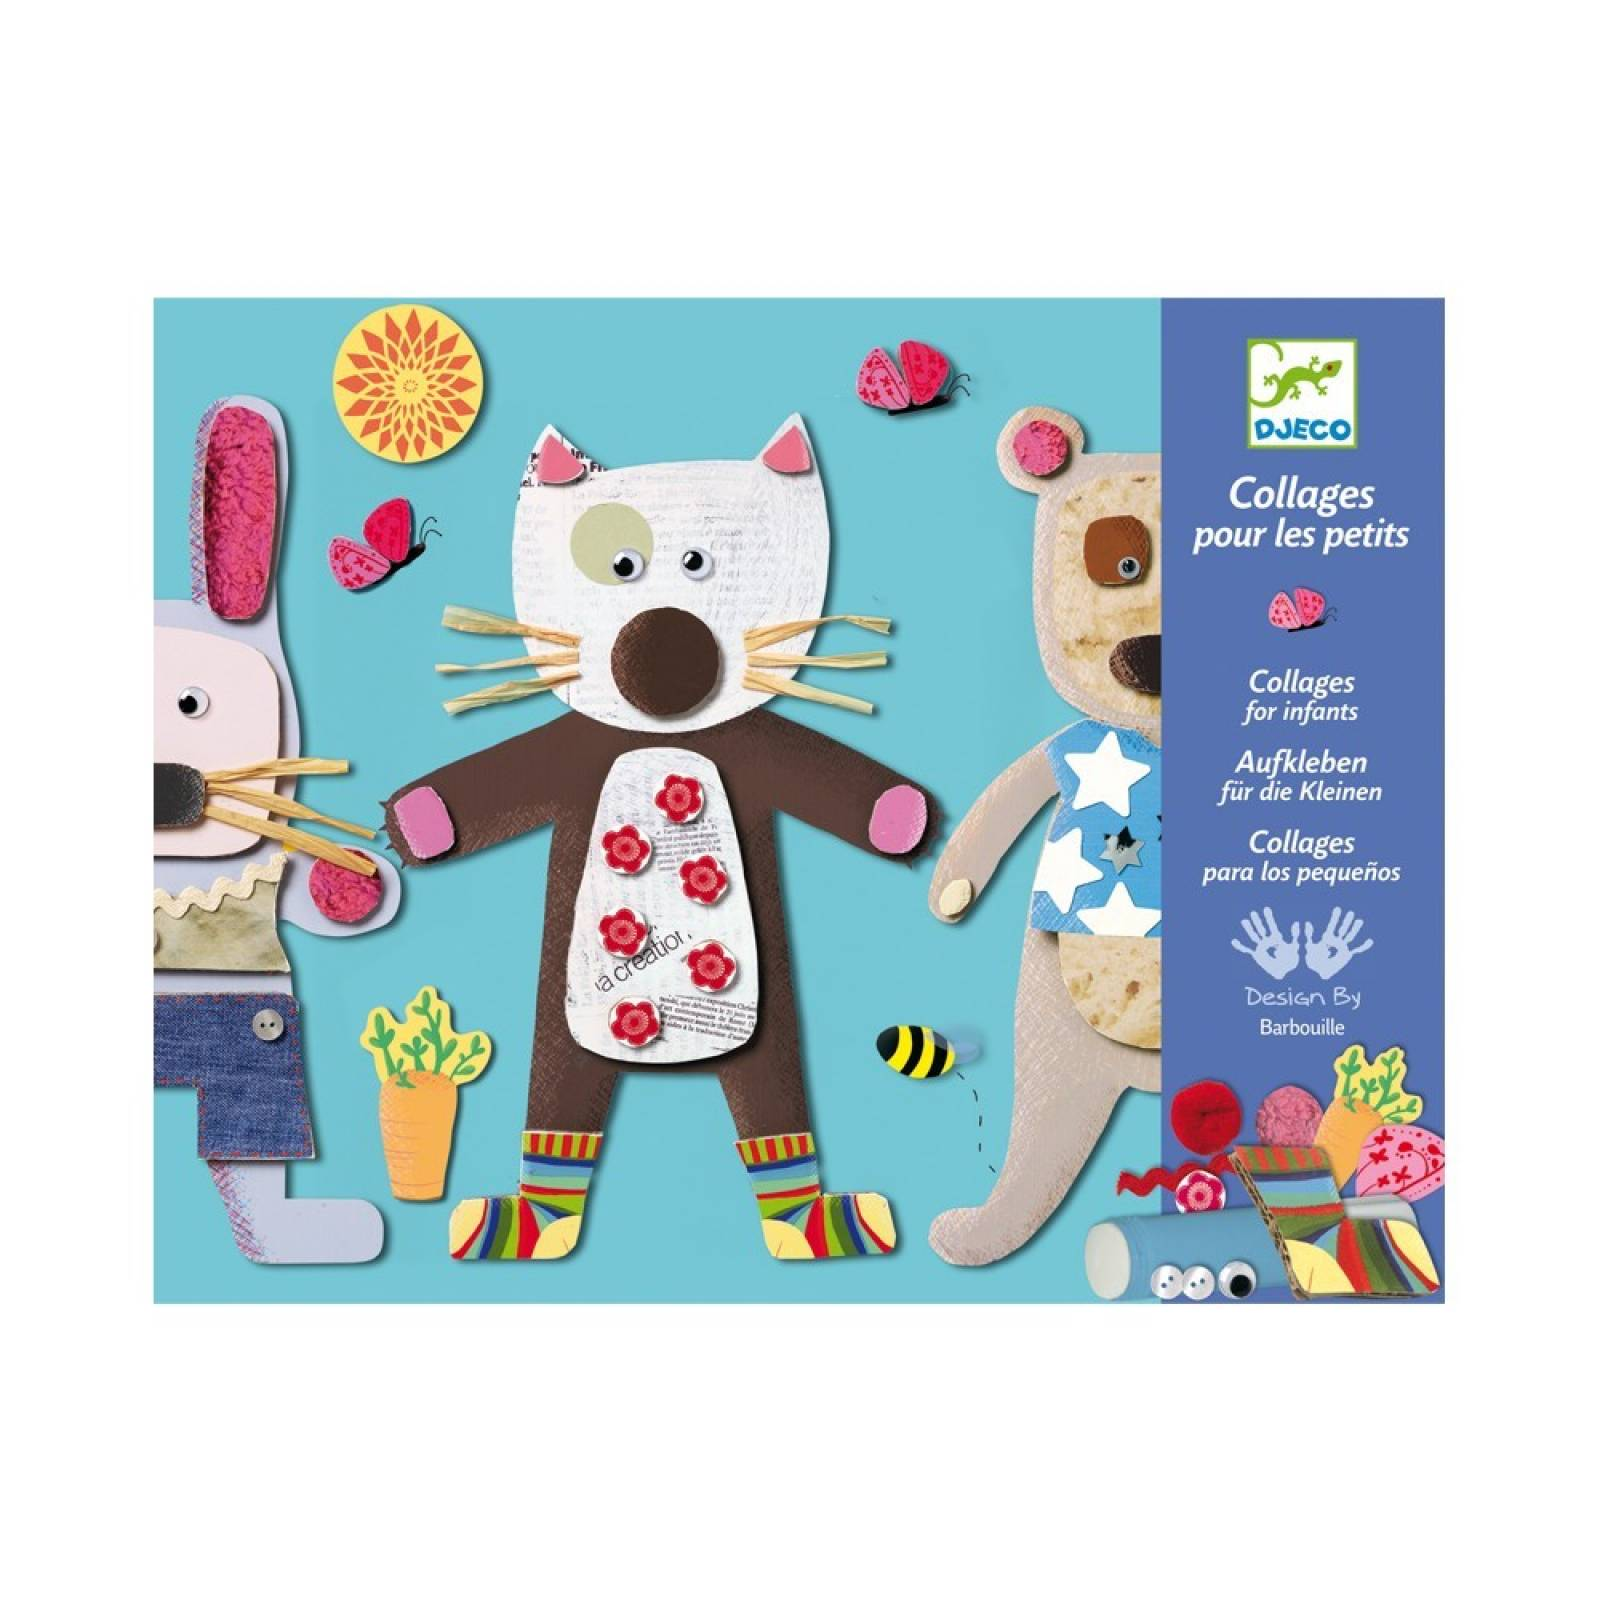 Animal Collage For Little Ones By Djeco 3-6yrs